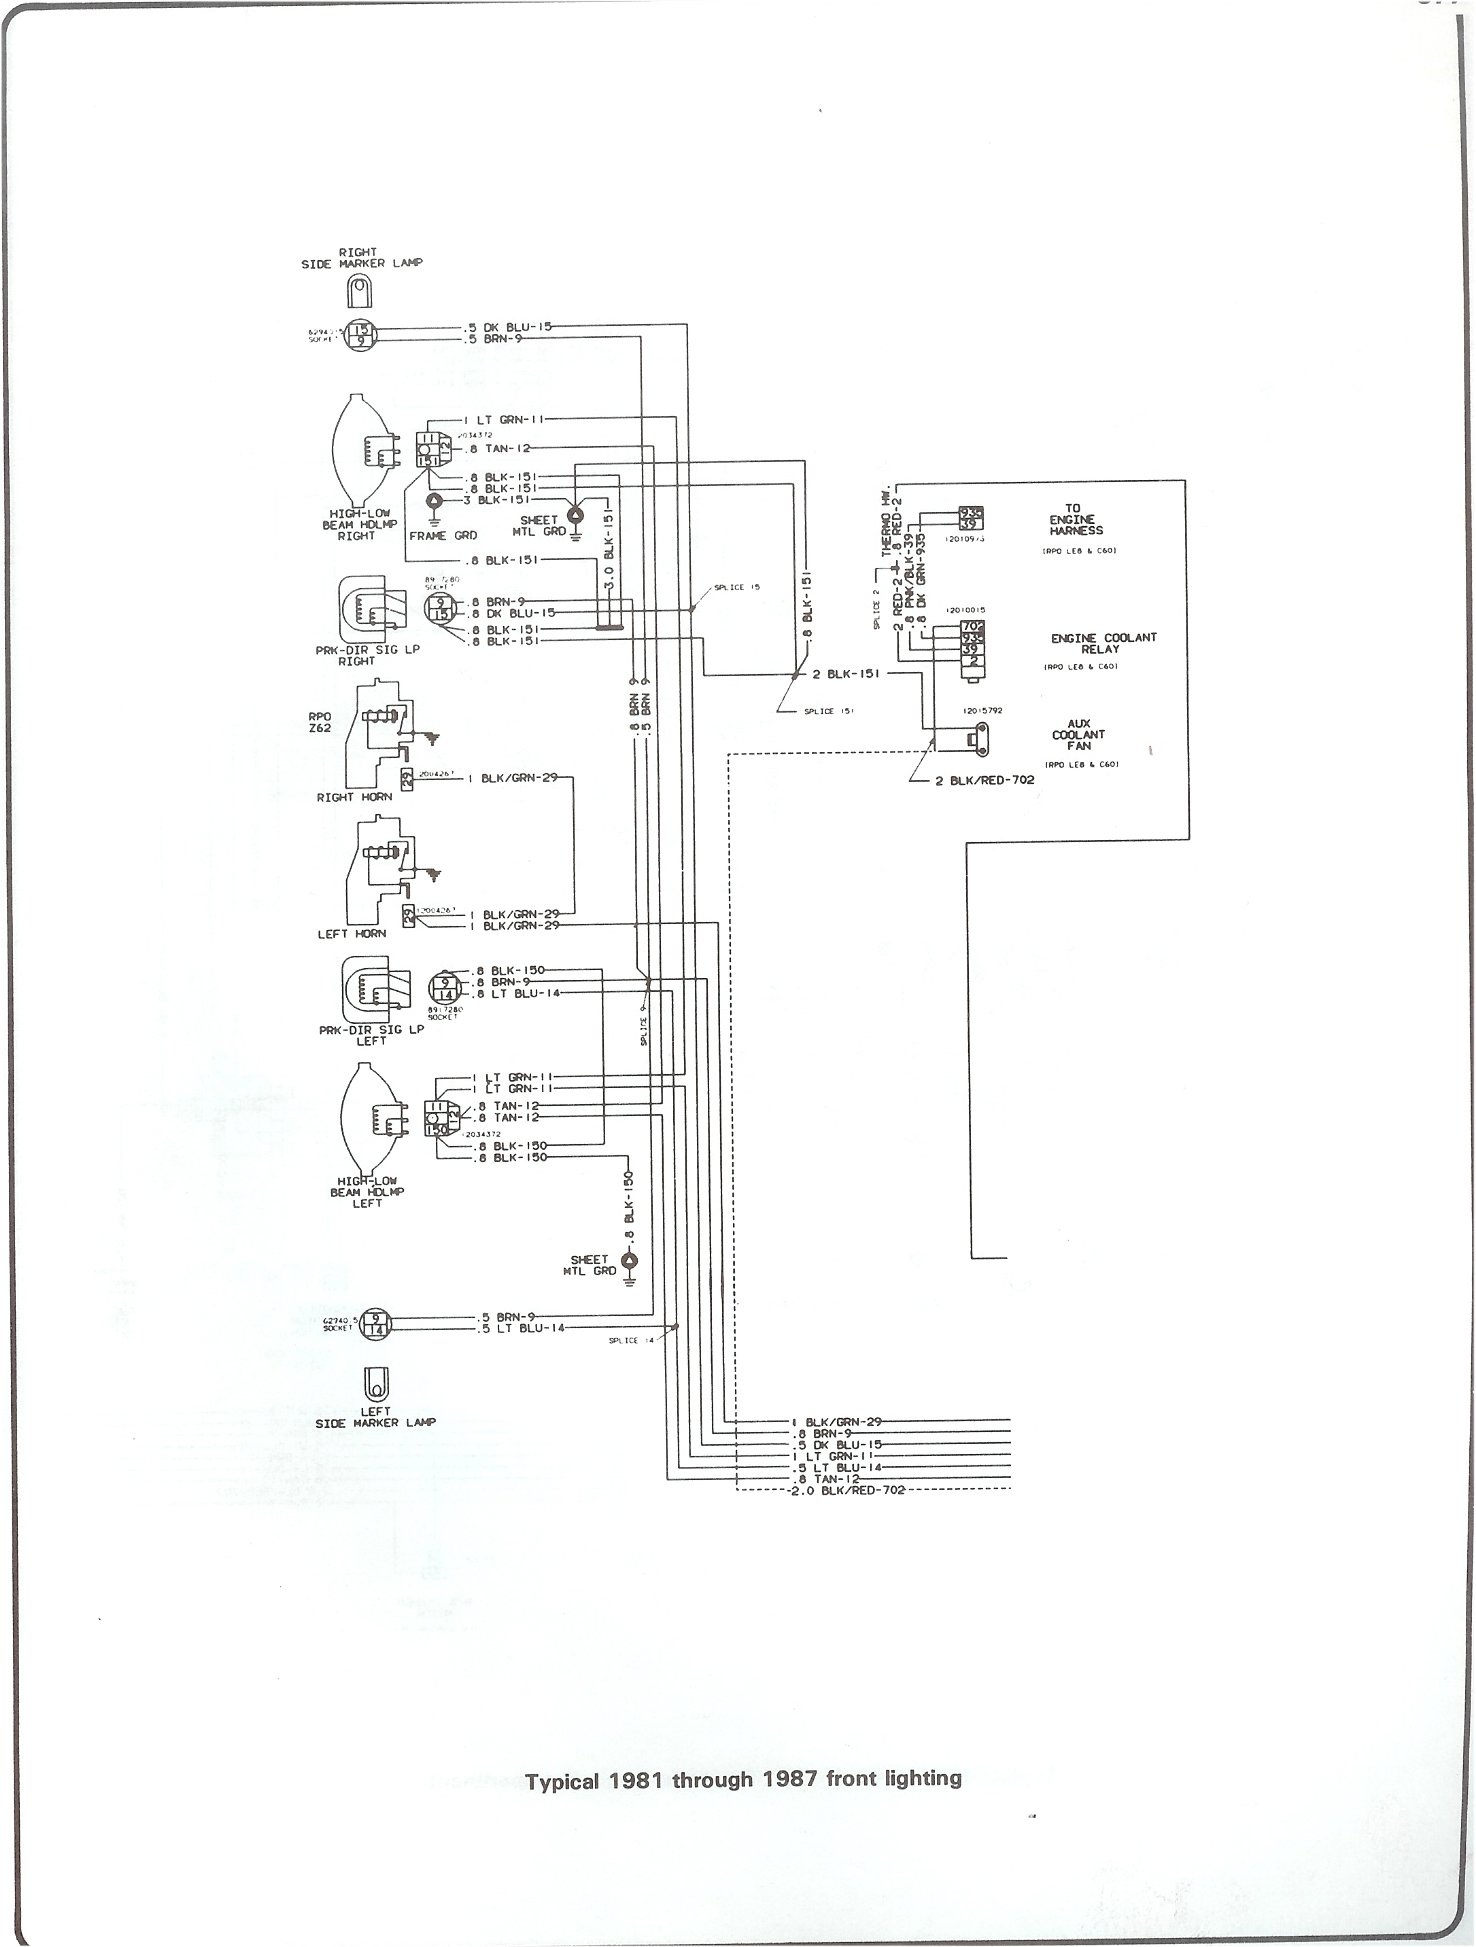 87 Chevy S10 Wiring Diagram Free For You 1992 Blazer Radio Complete 73 Diagrams Rh Forum 87chevytrucks Com 1987 Tail Light